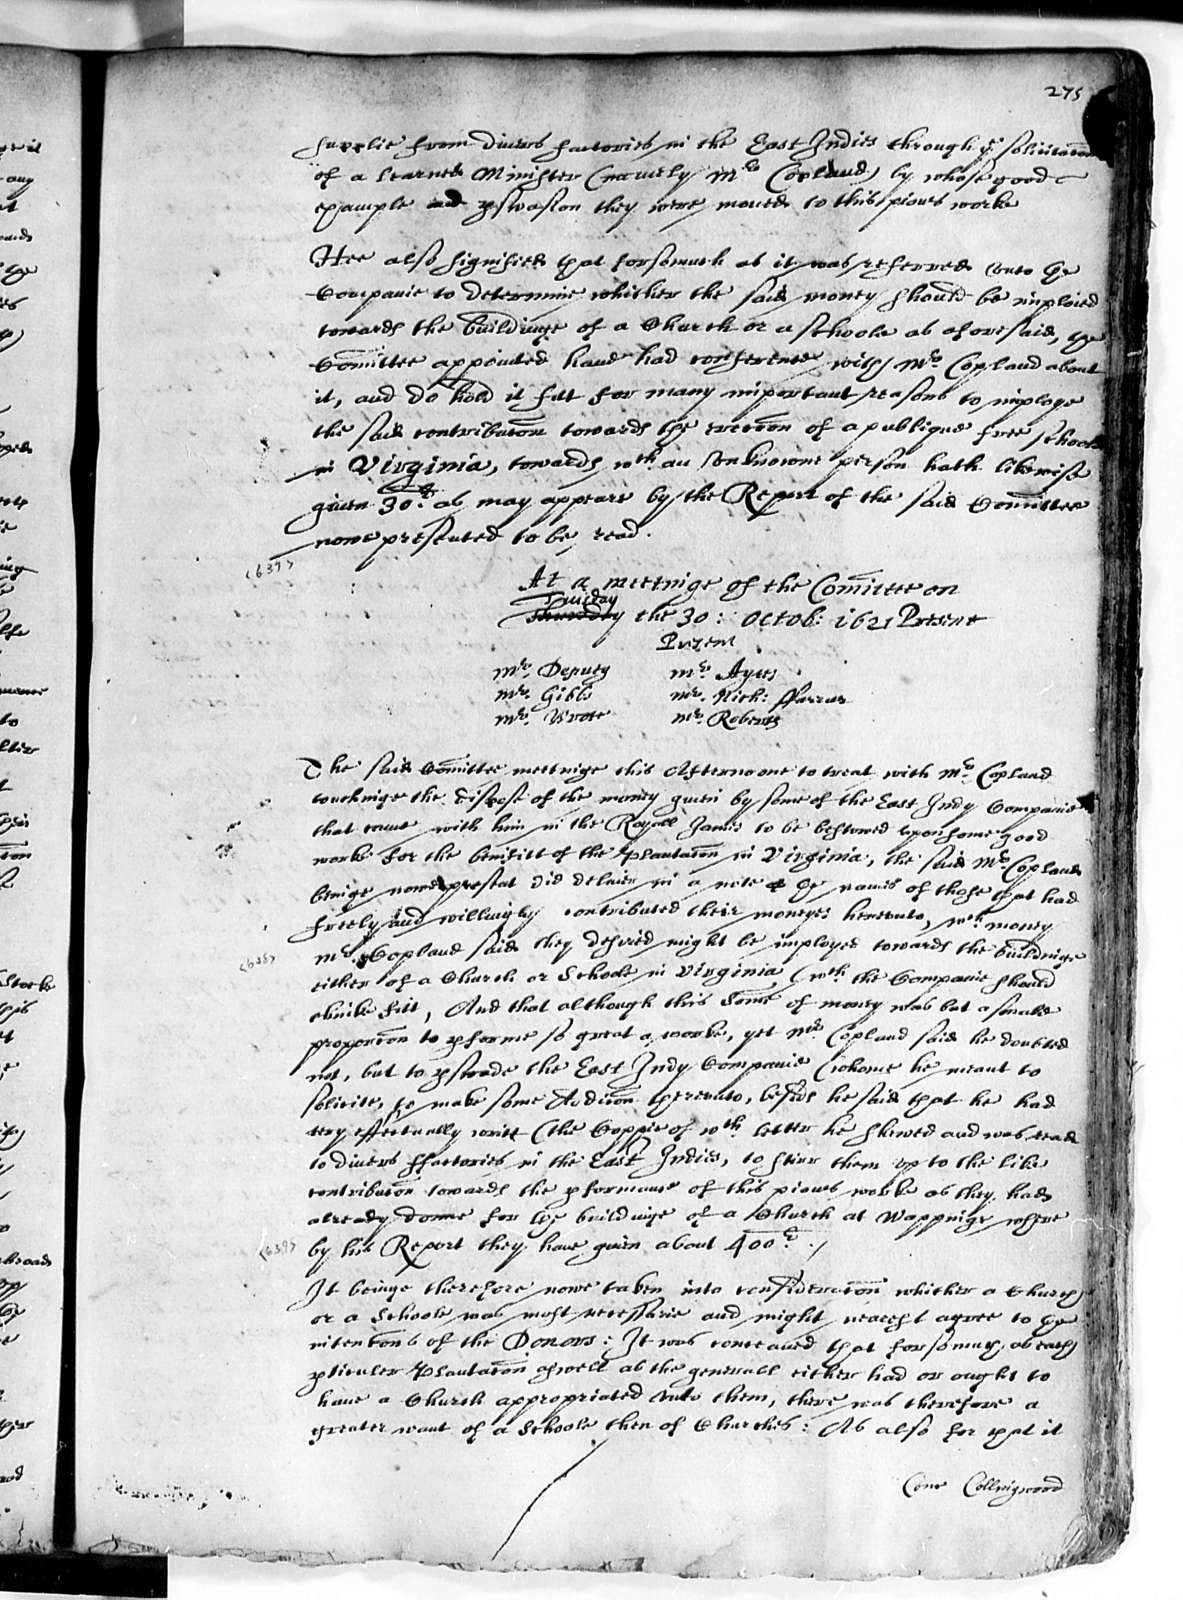 Virginia Company of London, 1619-22, Court Book Part A